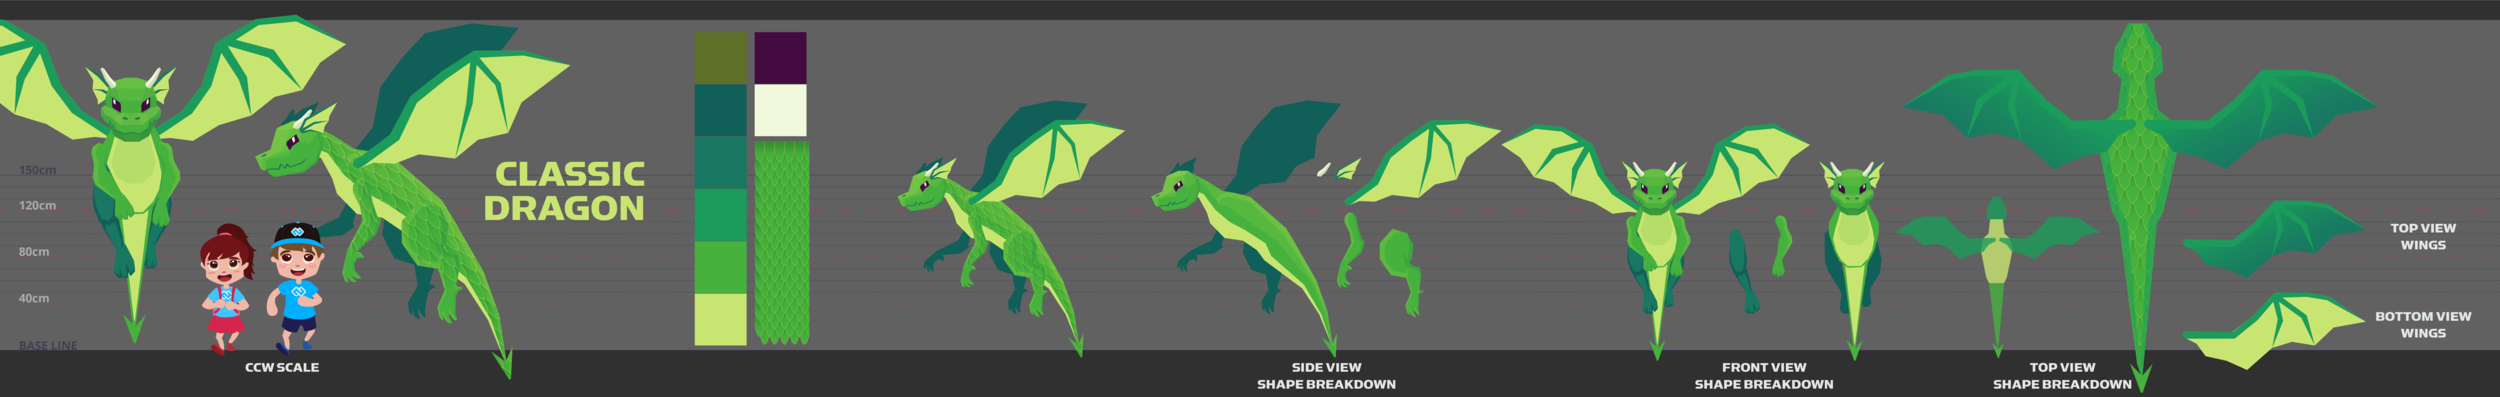 Dragon_1_modelSheet_full.png